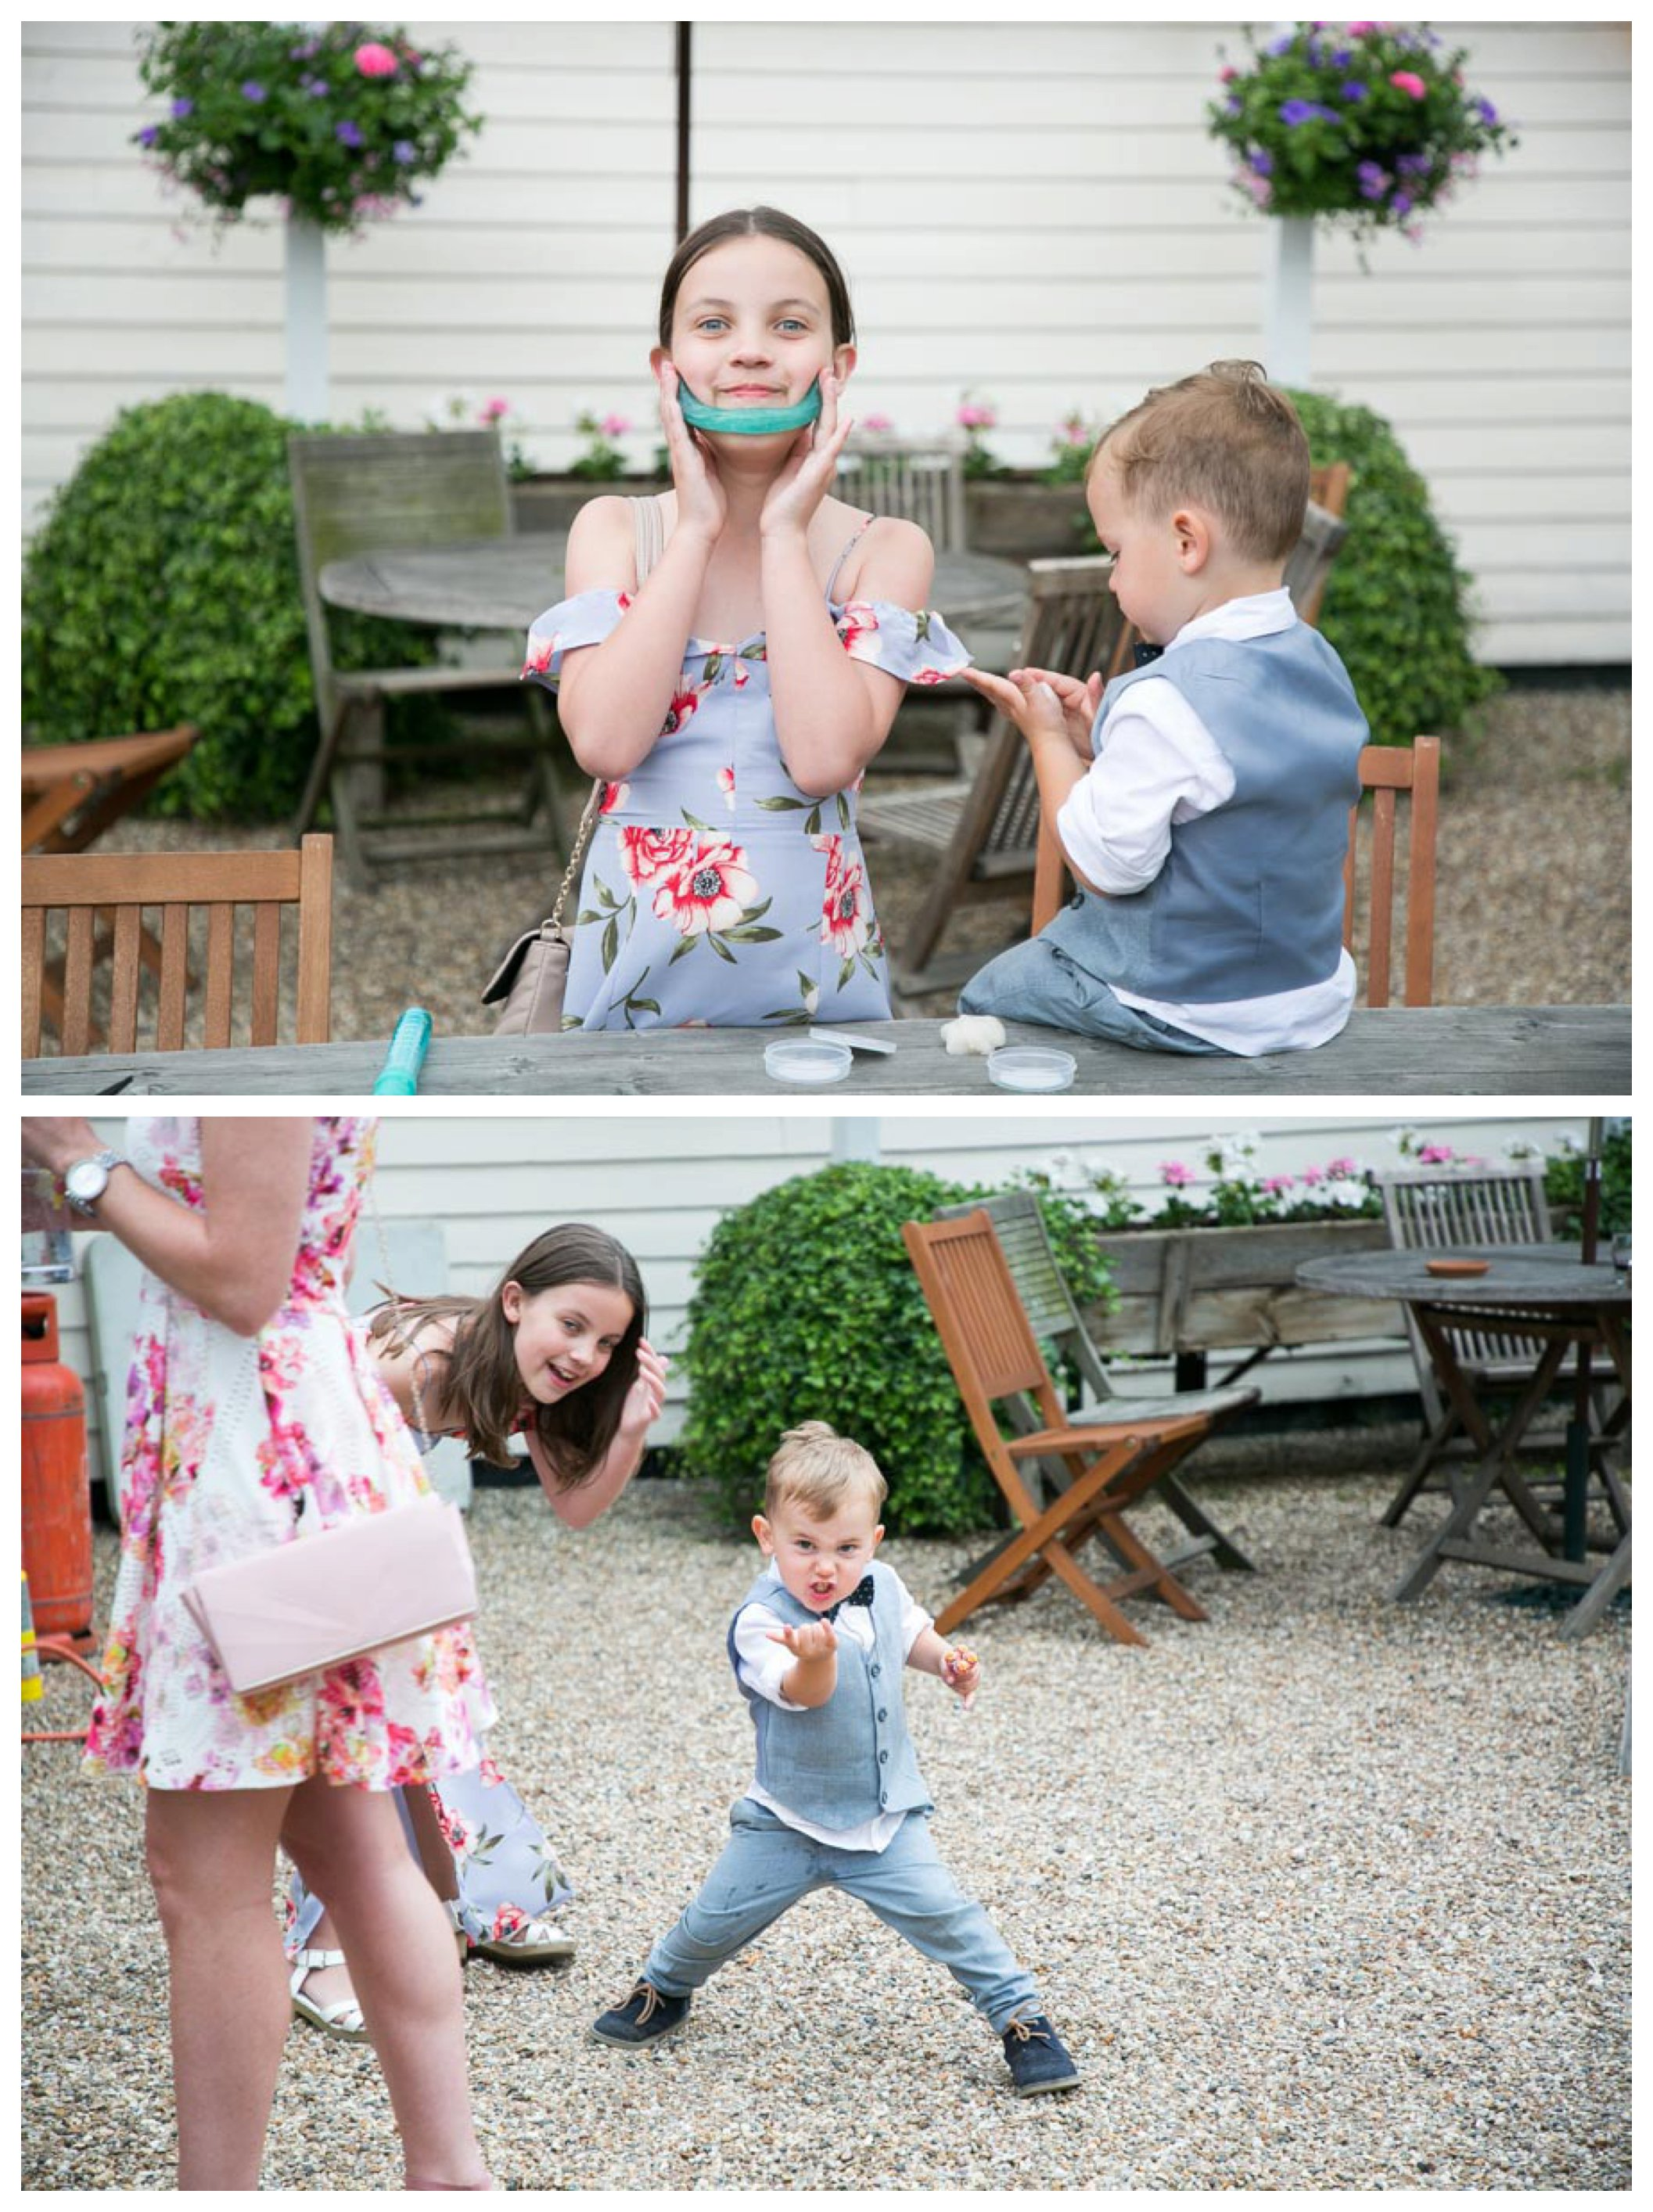 kids playing and having fun at out door wedding reception